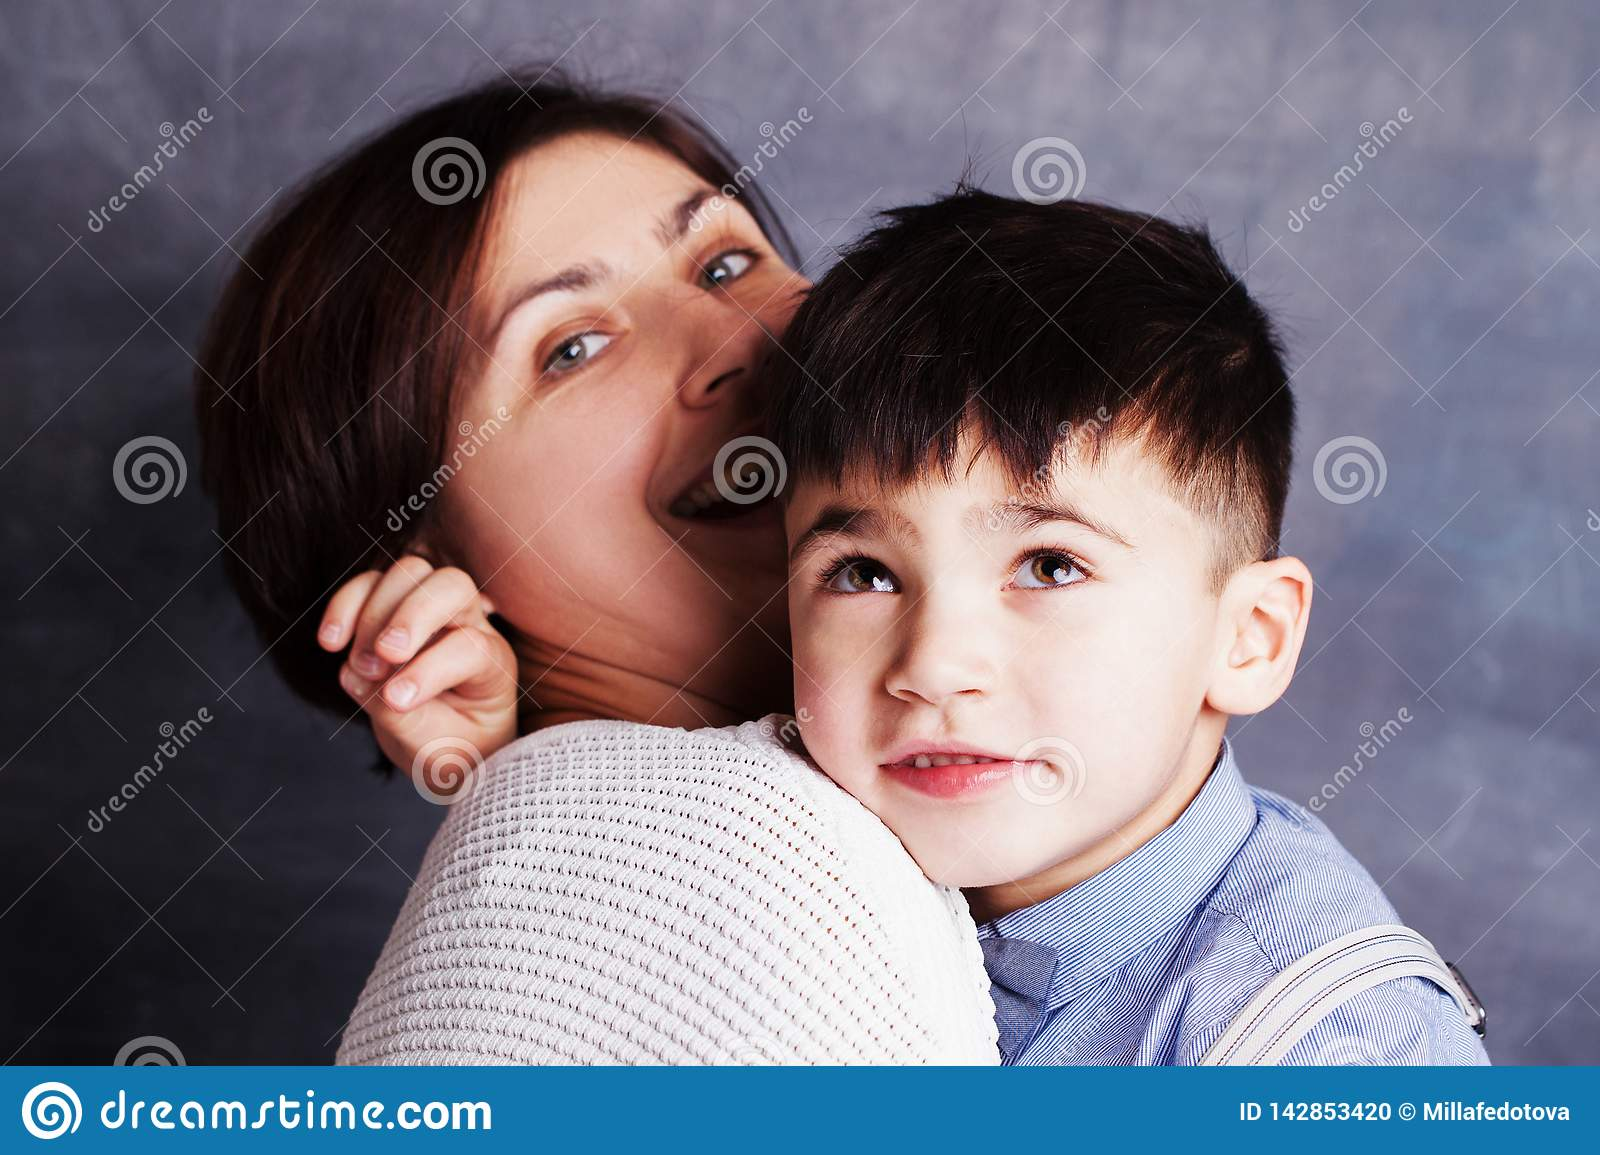 Closeup portrait of cute little boy and woman brunette. Mother and her son hugging